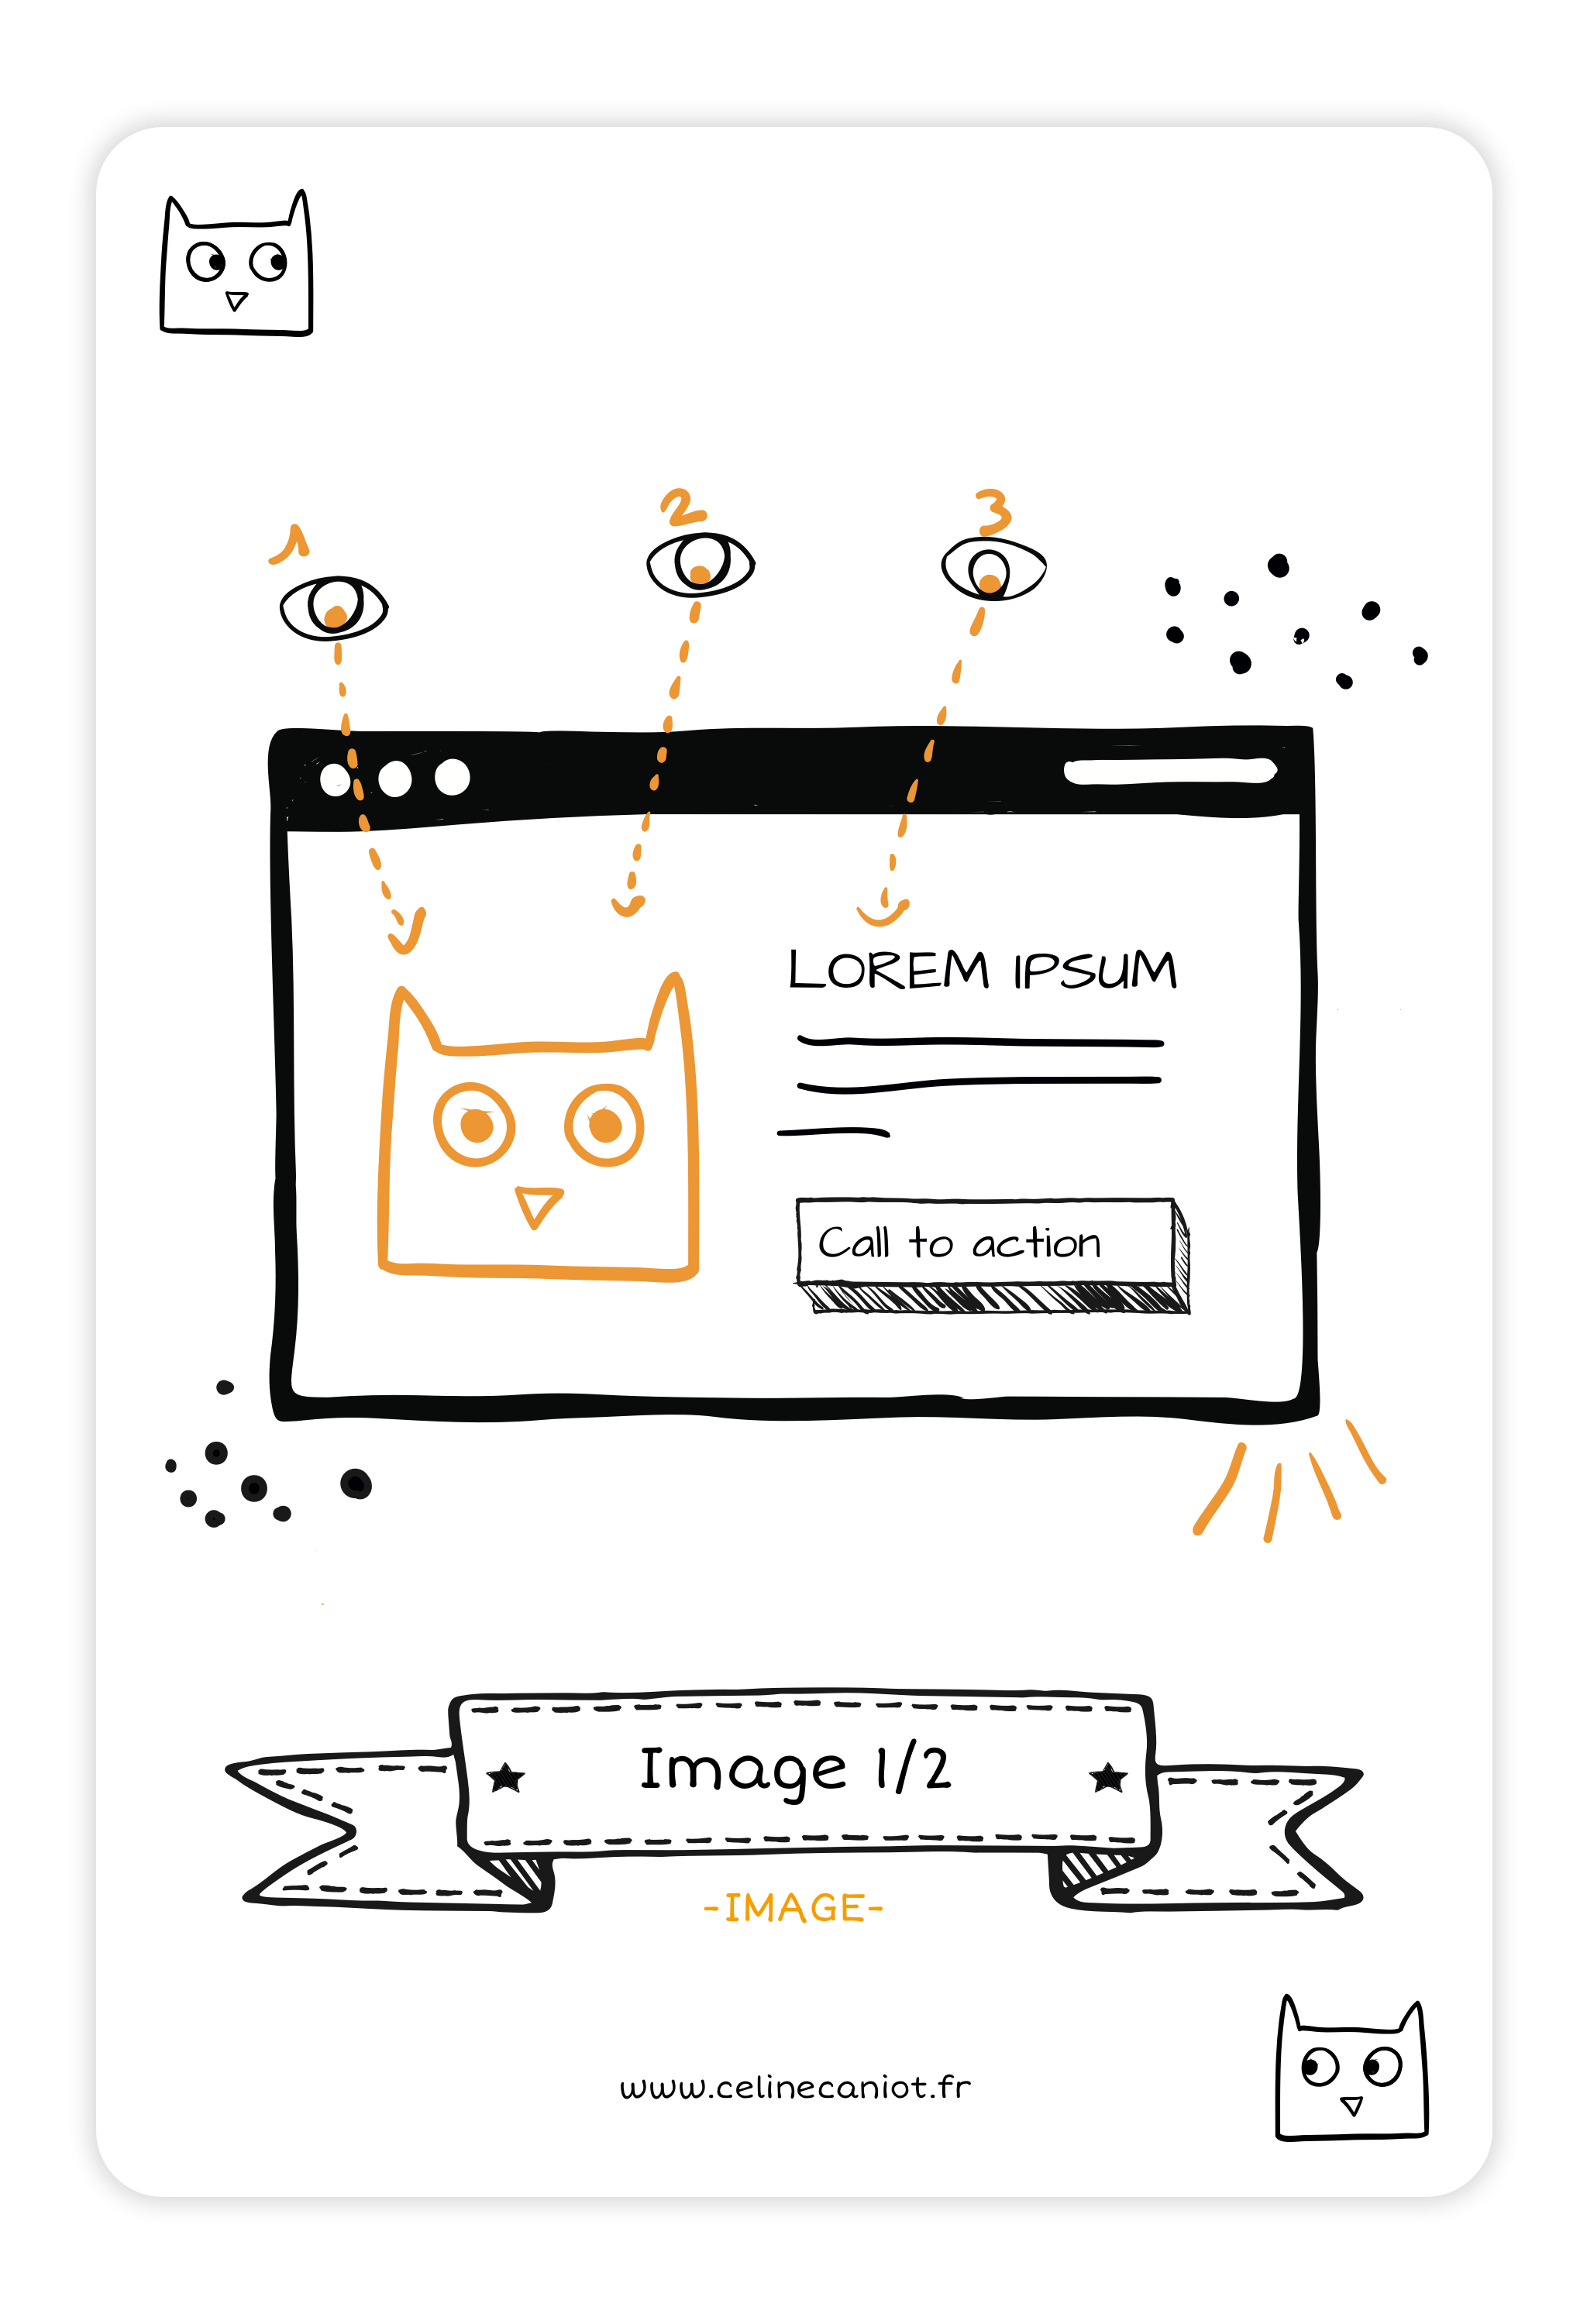 Composition image - UX design